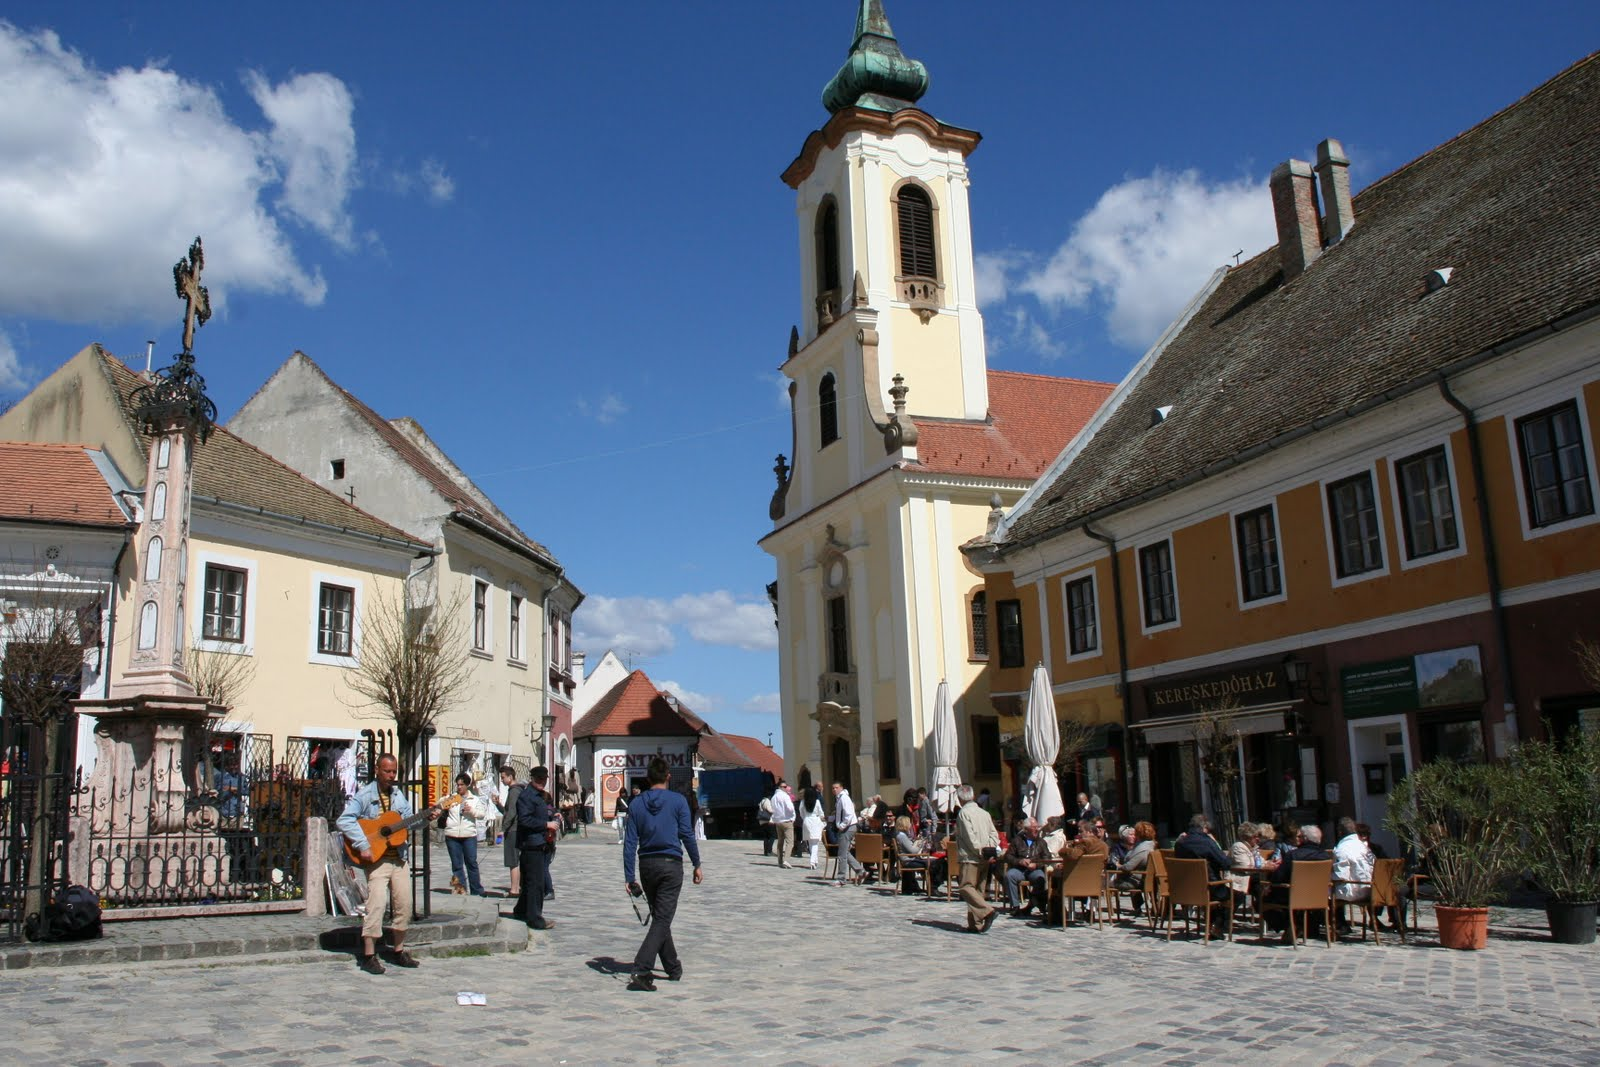 Szentendre Hungary  city pictures gallery : To See the Seven Continents: Szentendre, Hungary